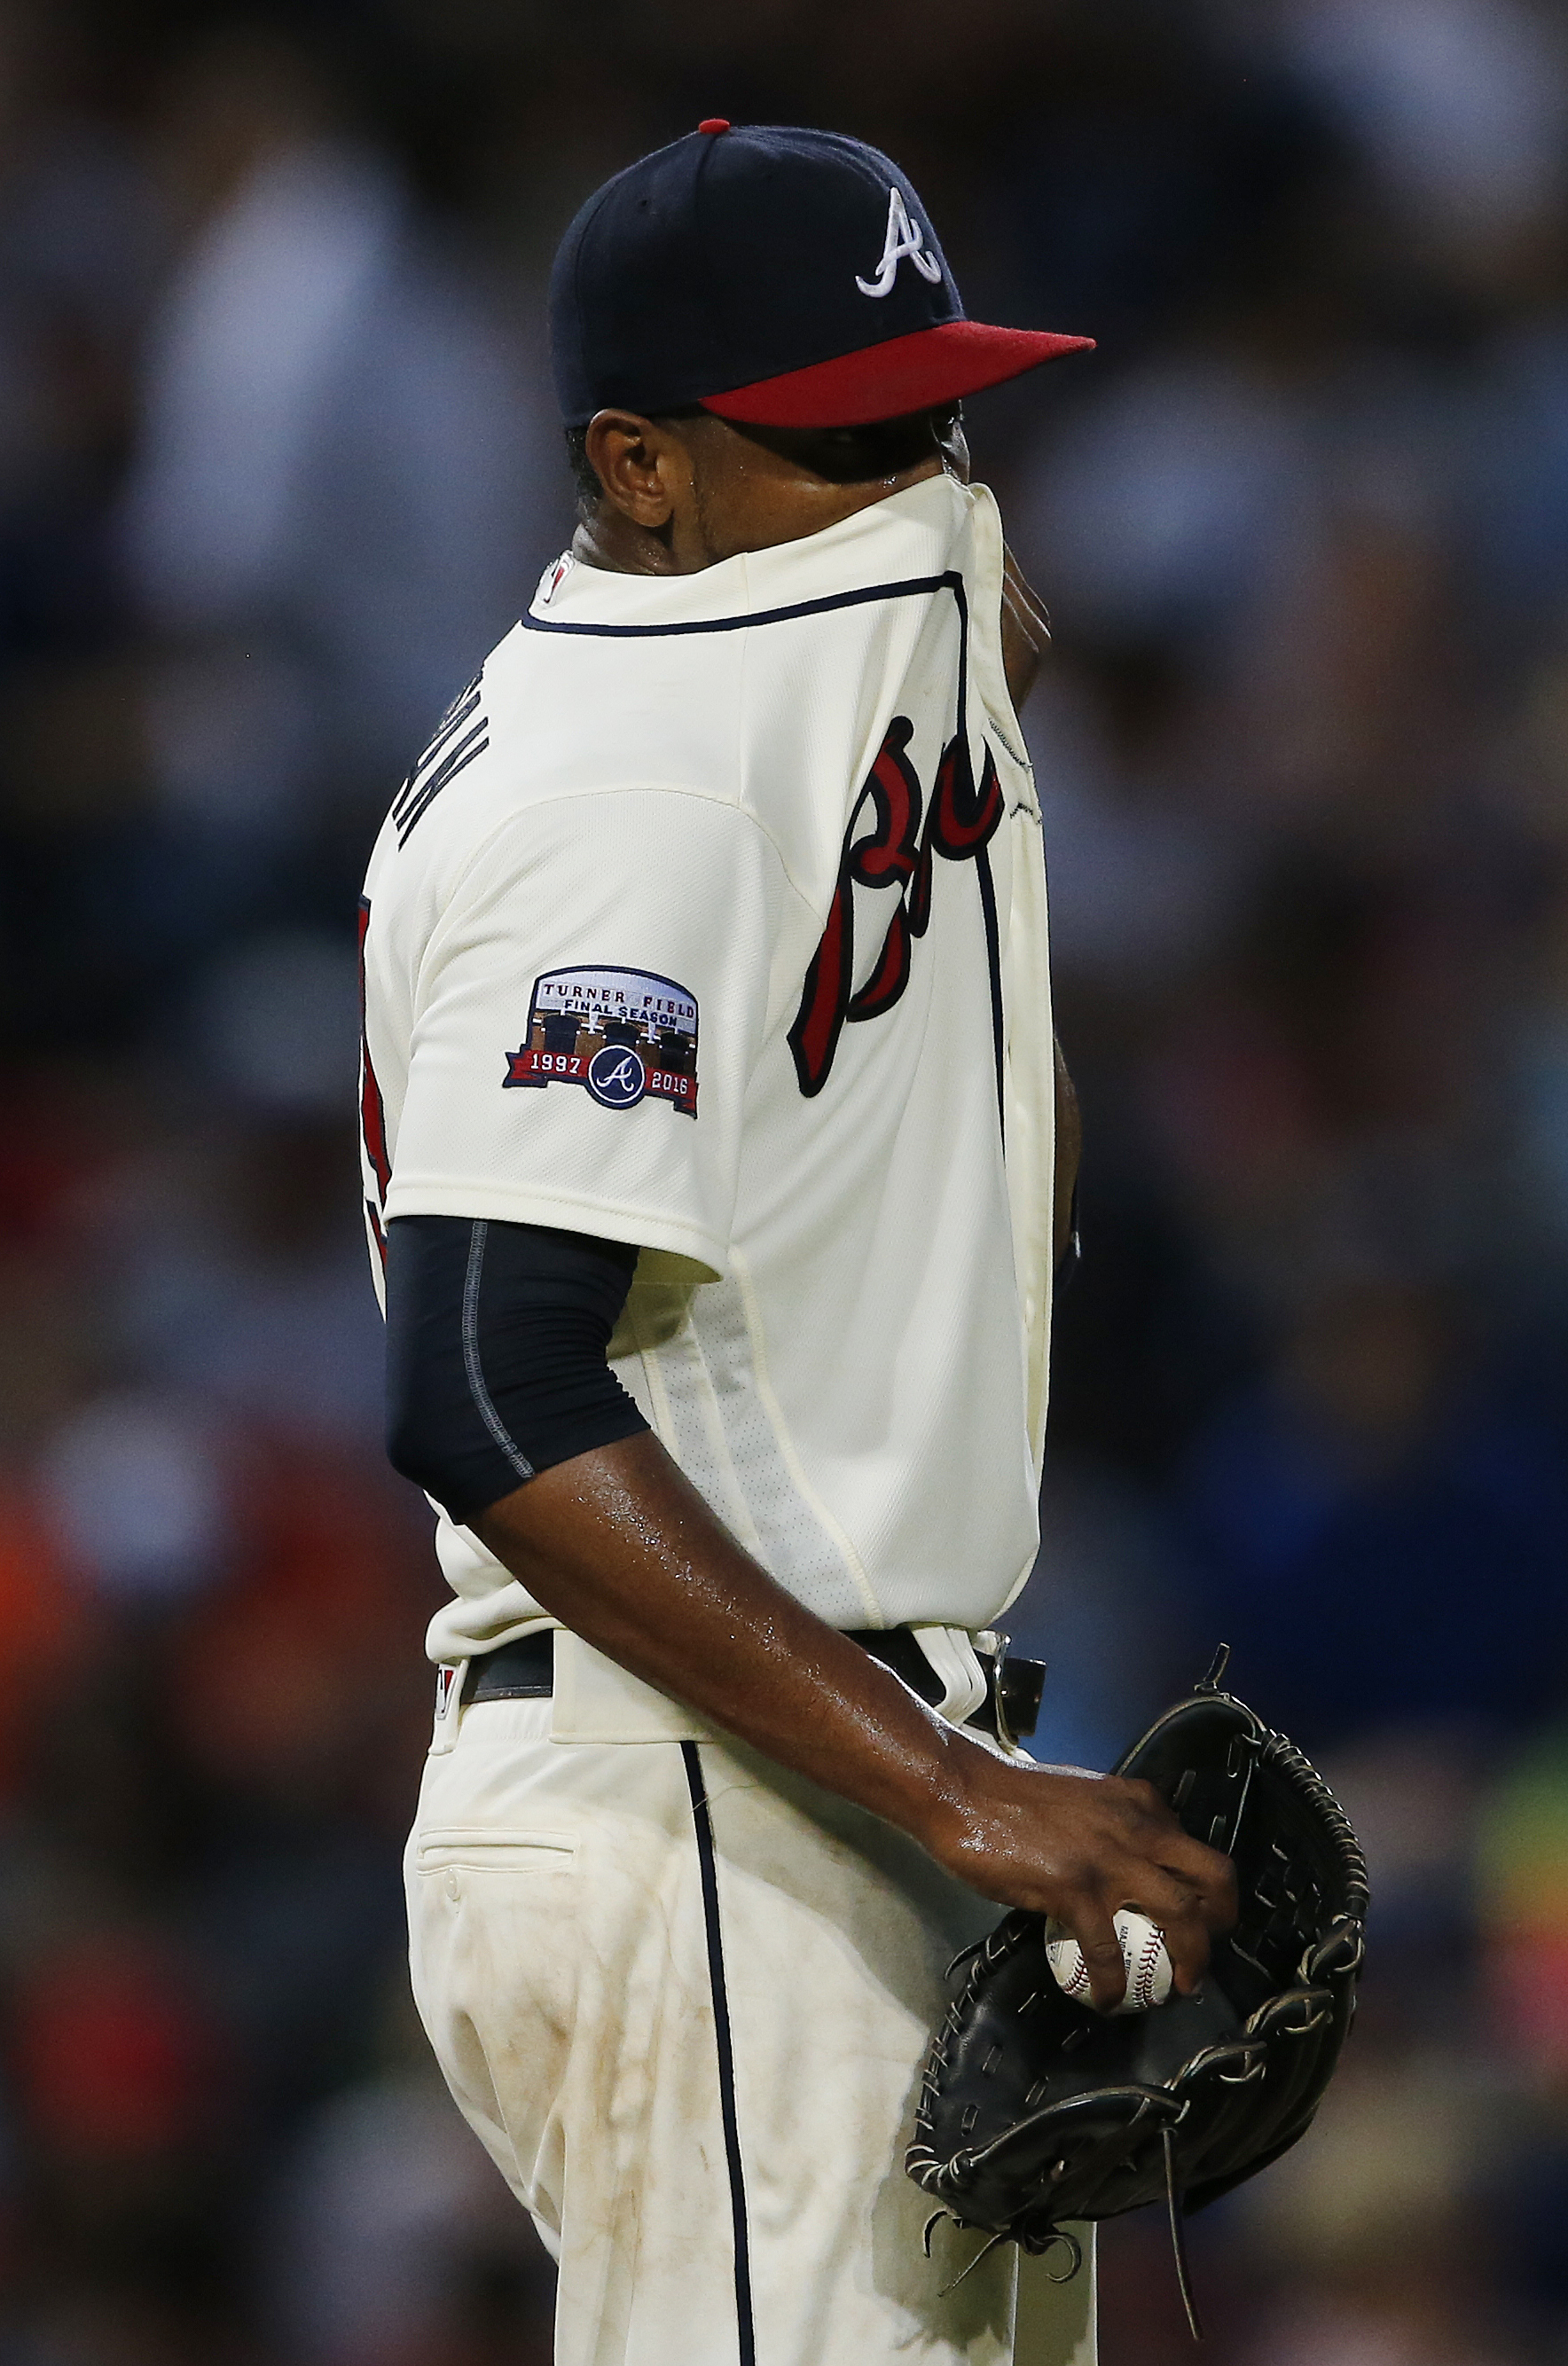 Atlanta Braves starting pitcher Julio Teheran wipes his face in the fifth inning of a baseball game against the Philadelphia Phillies, Saturday, July 30, 2016, in Atlanta. (AP Photo/John Bazemore)